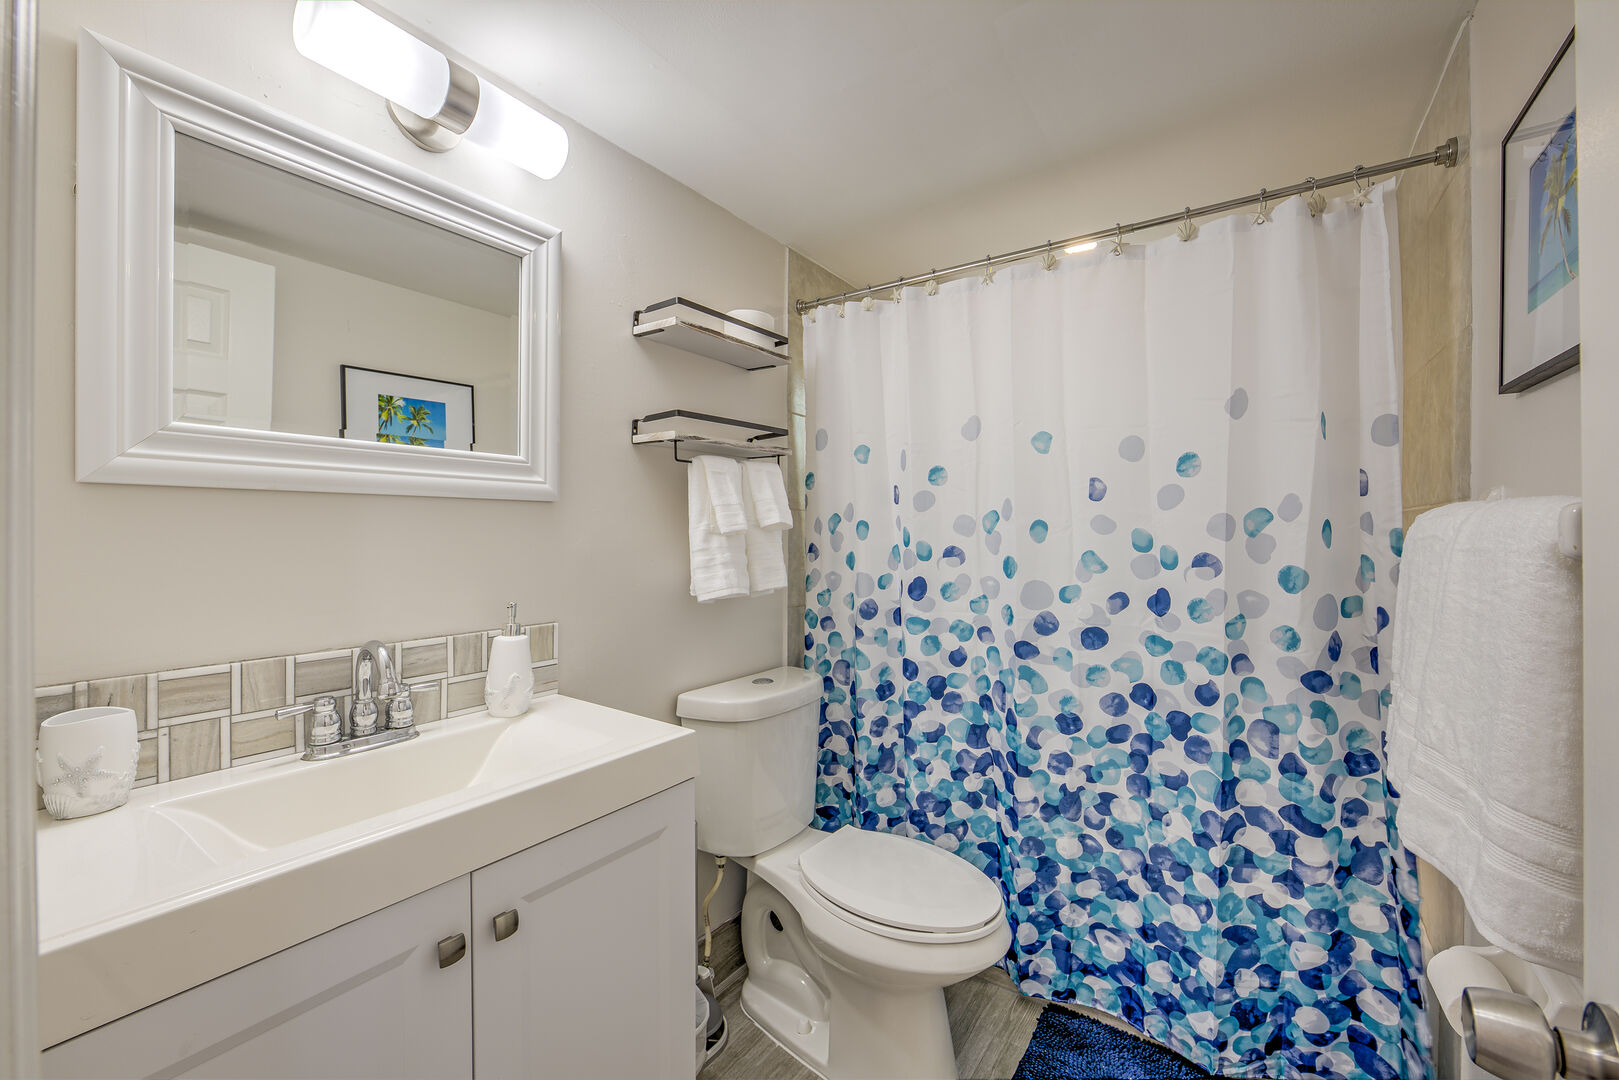 Bathroom in the Vacation Homes in Fort Myers